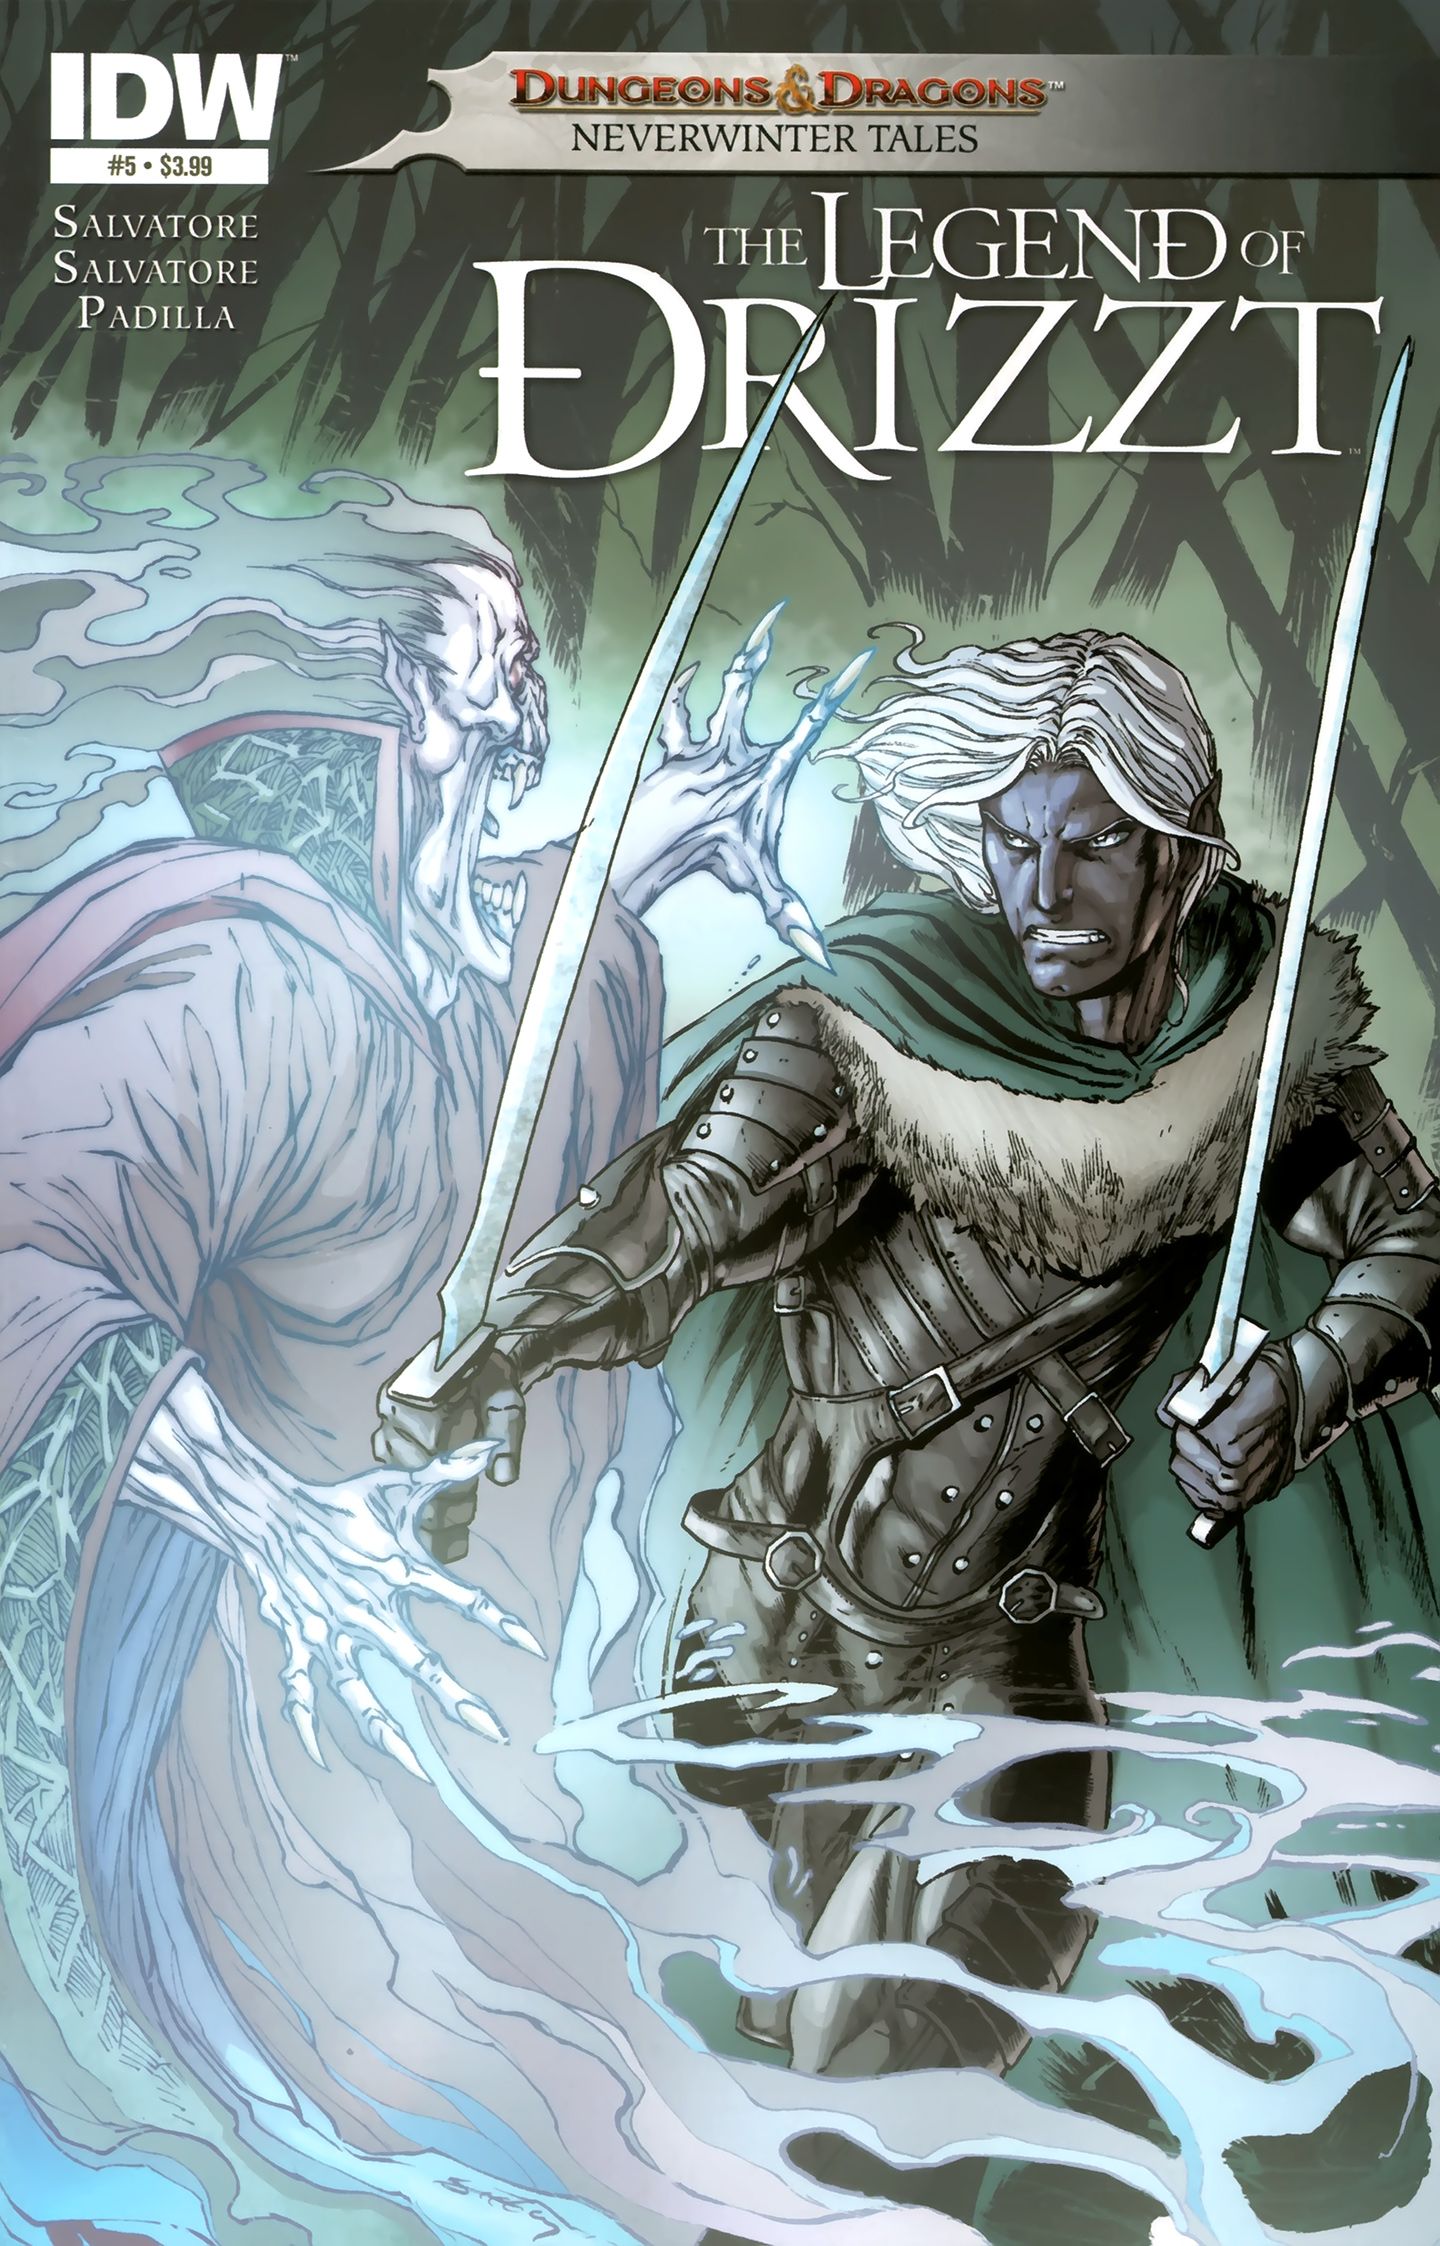 Dungeons & Dragons: The Legend of Drizzt: Neverwinter Tales 5 Page 1